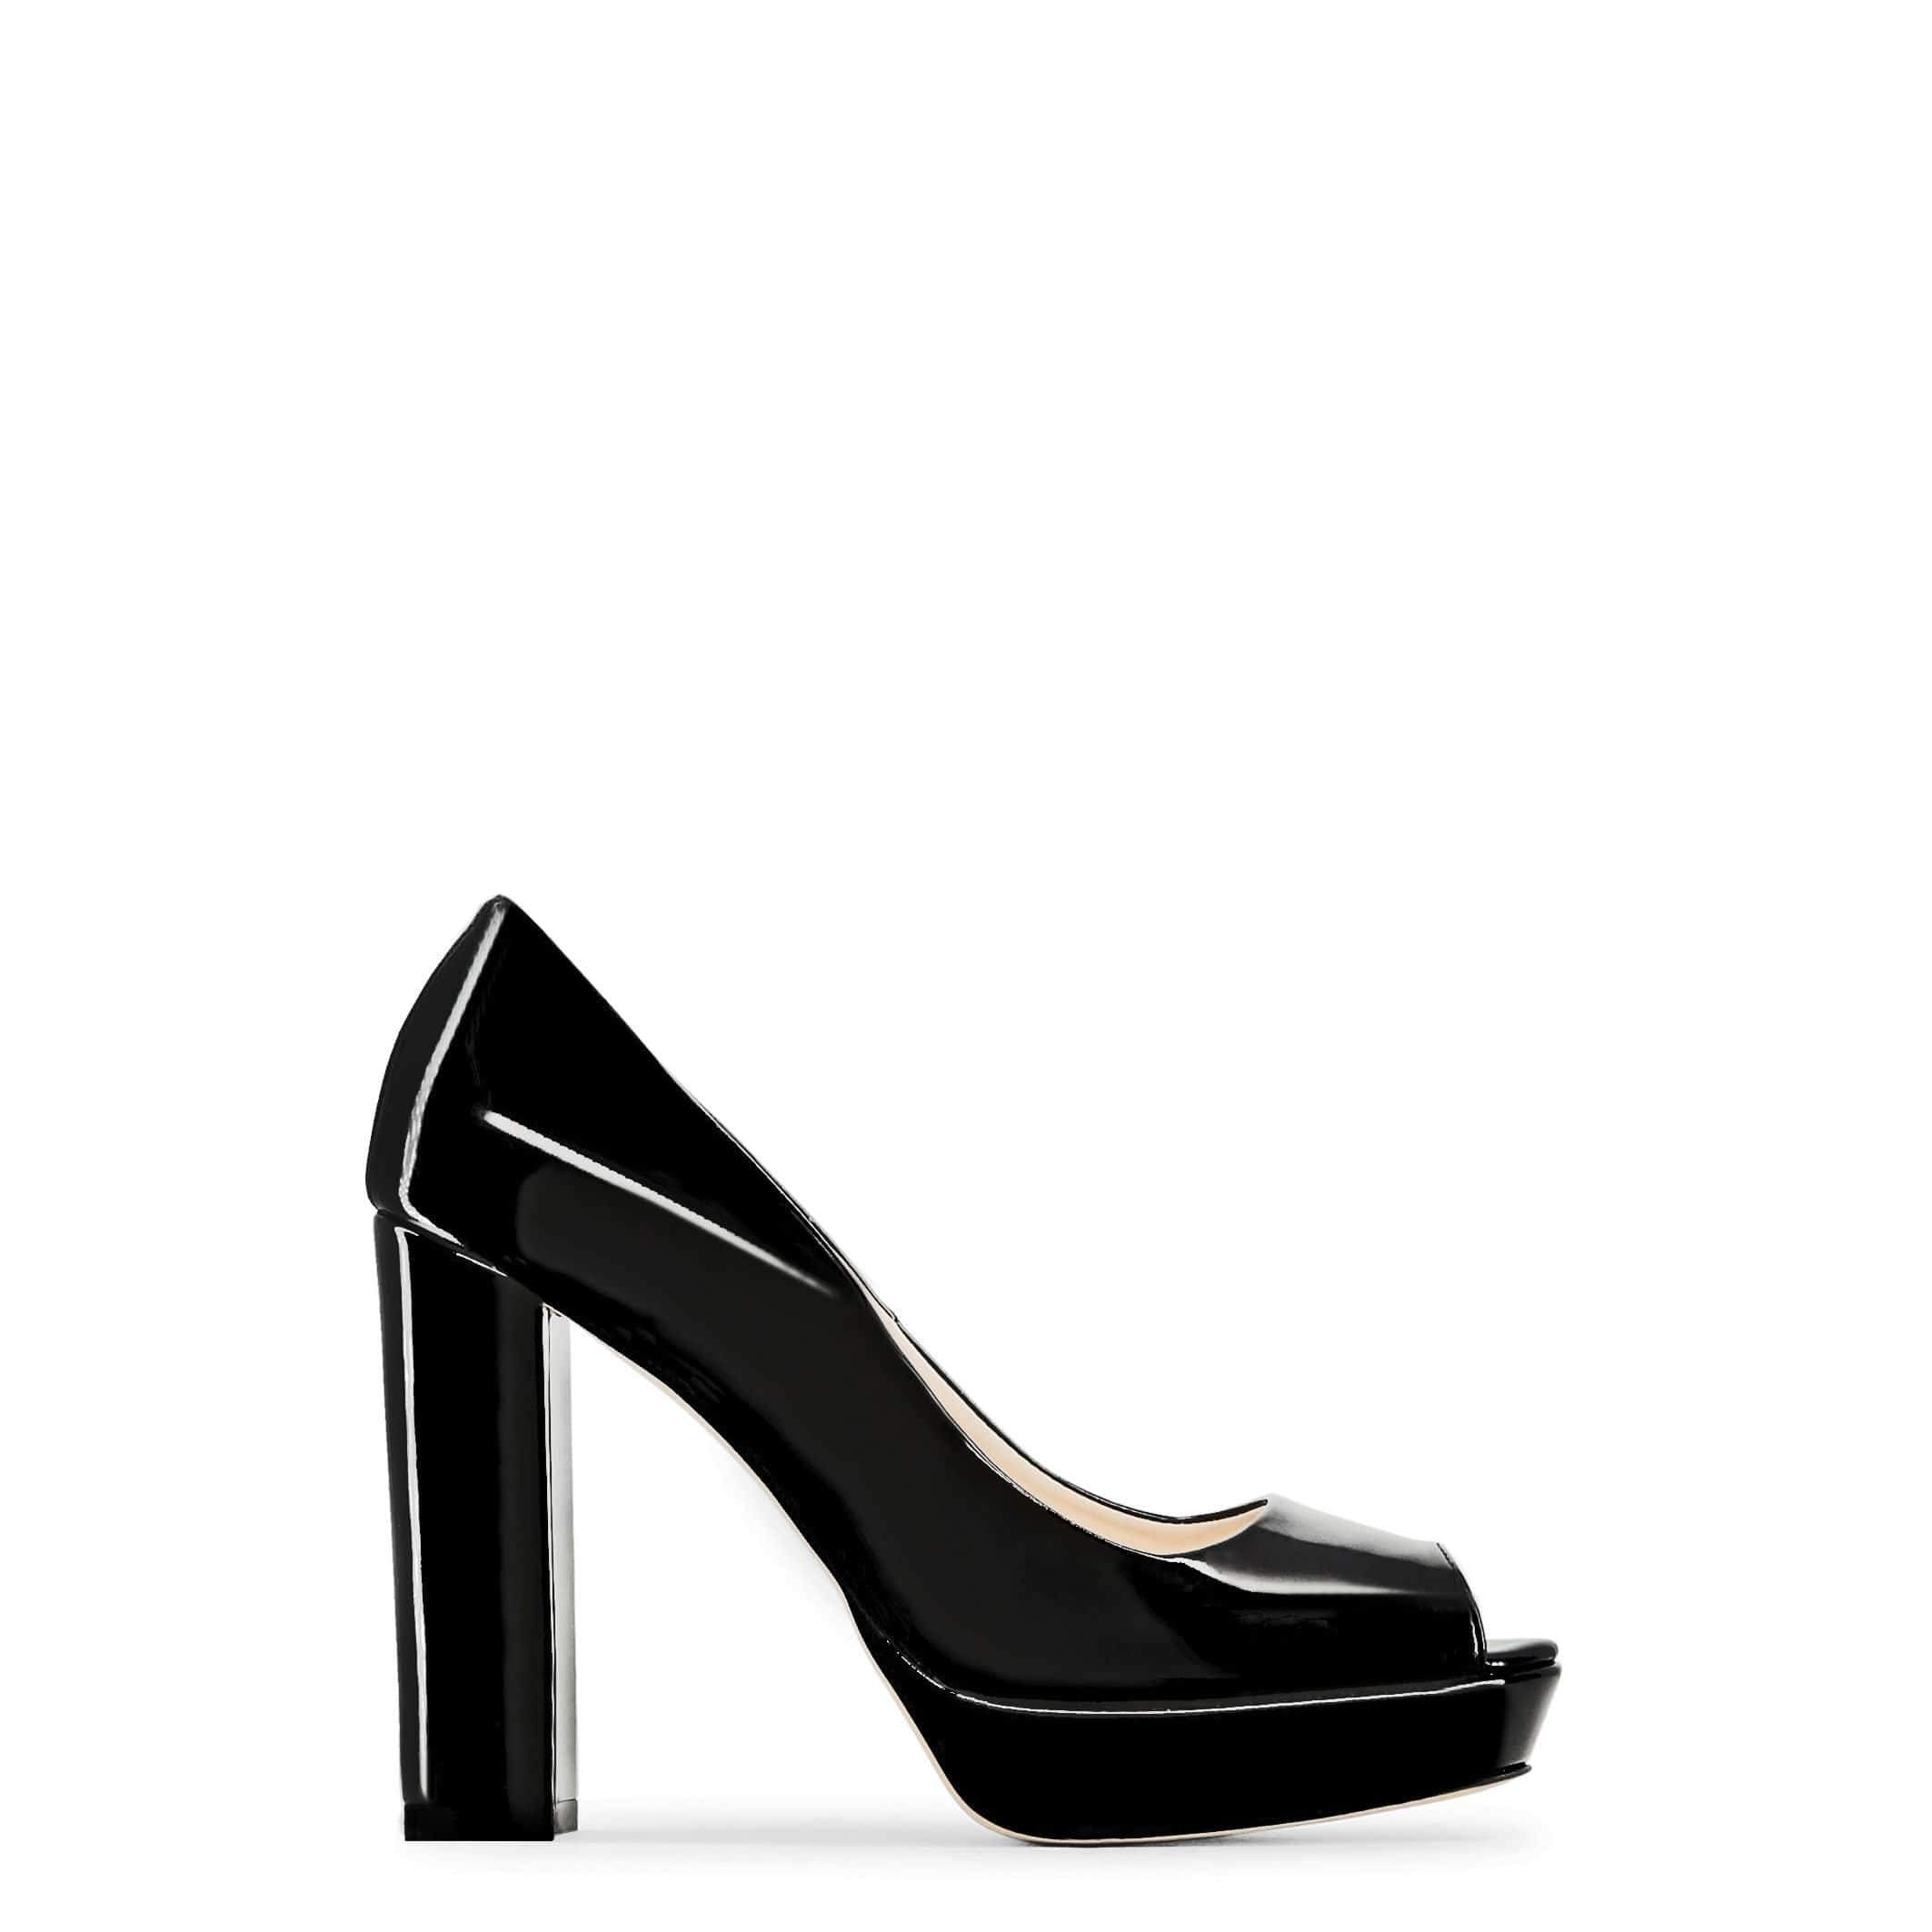 Made in Italia Shoes Pumps & Heels black / 38 Made in Italia - MIA